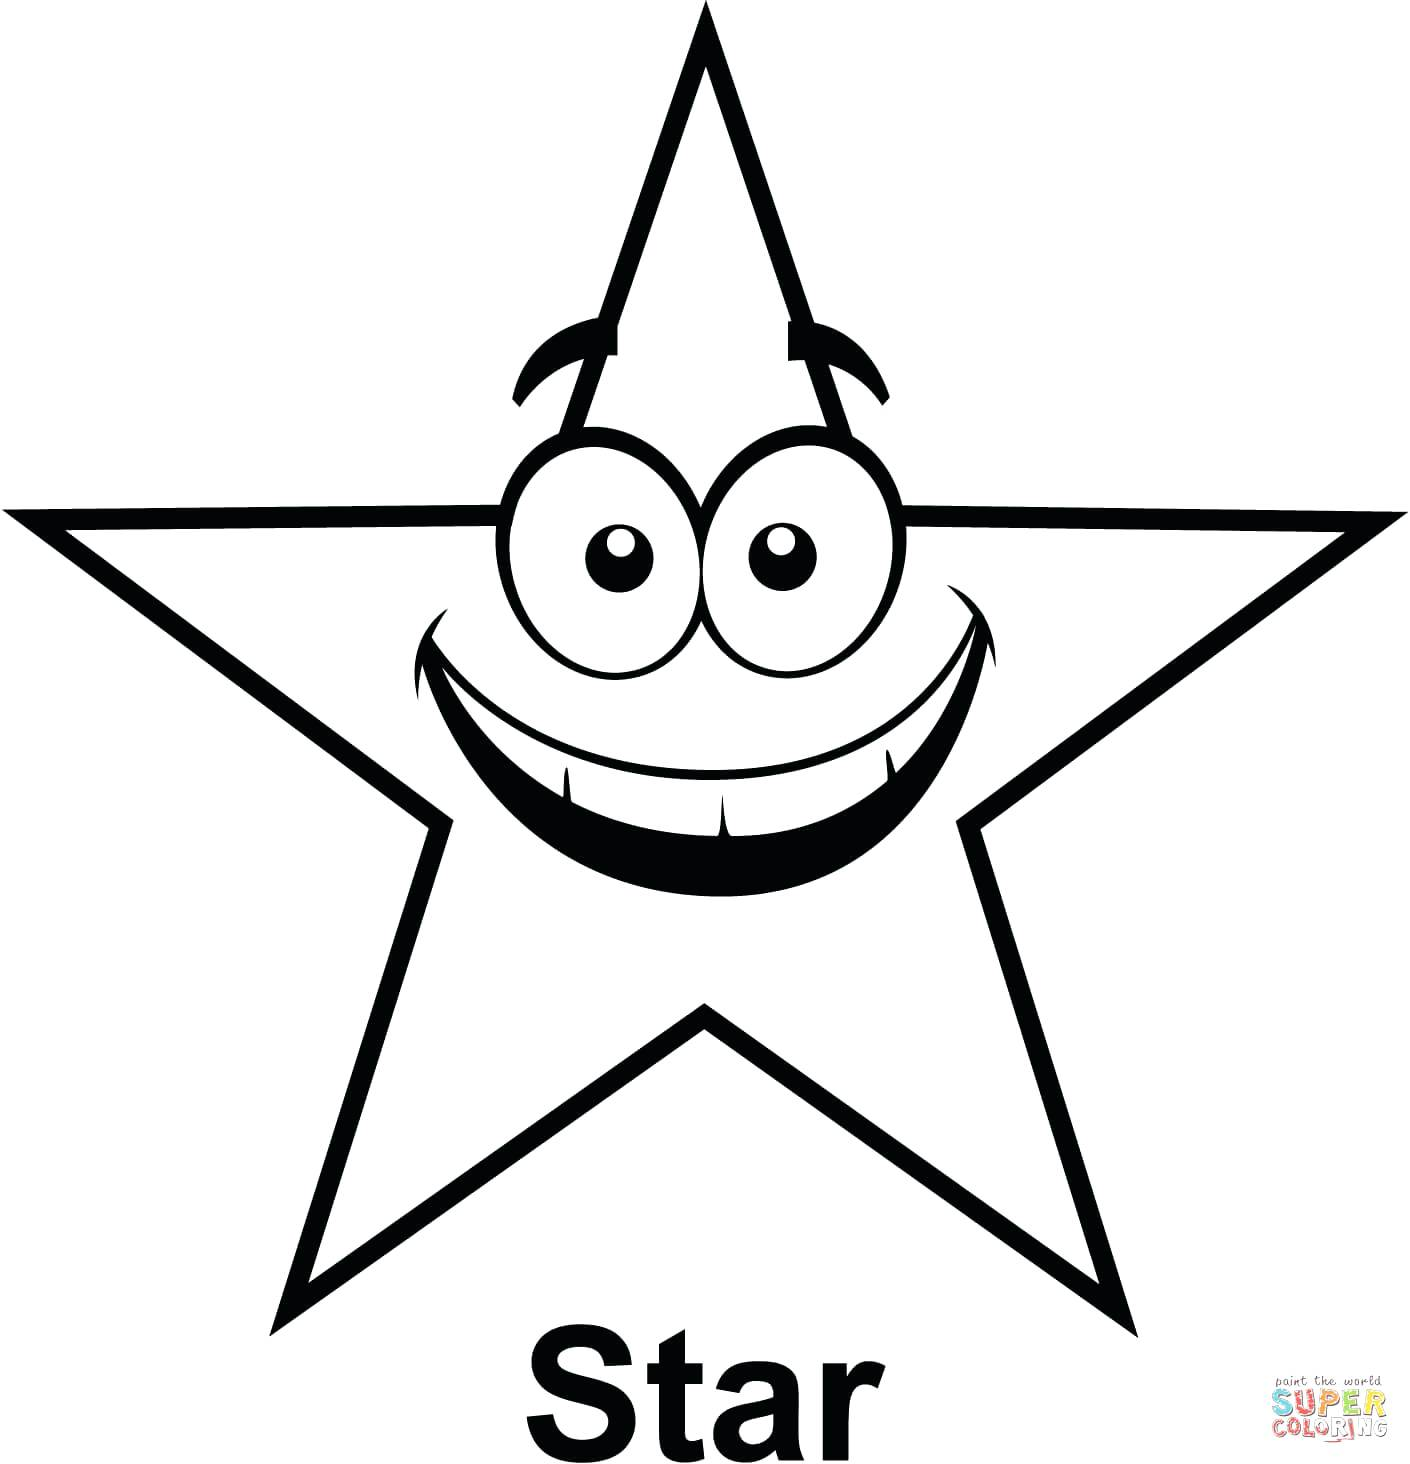 1410x1464 Shooting Star Colouring Page Free Coloring Pages Look Convenient